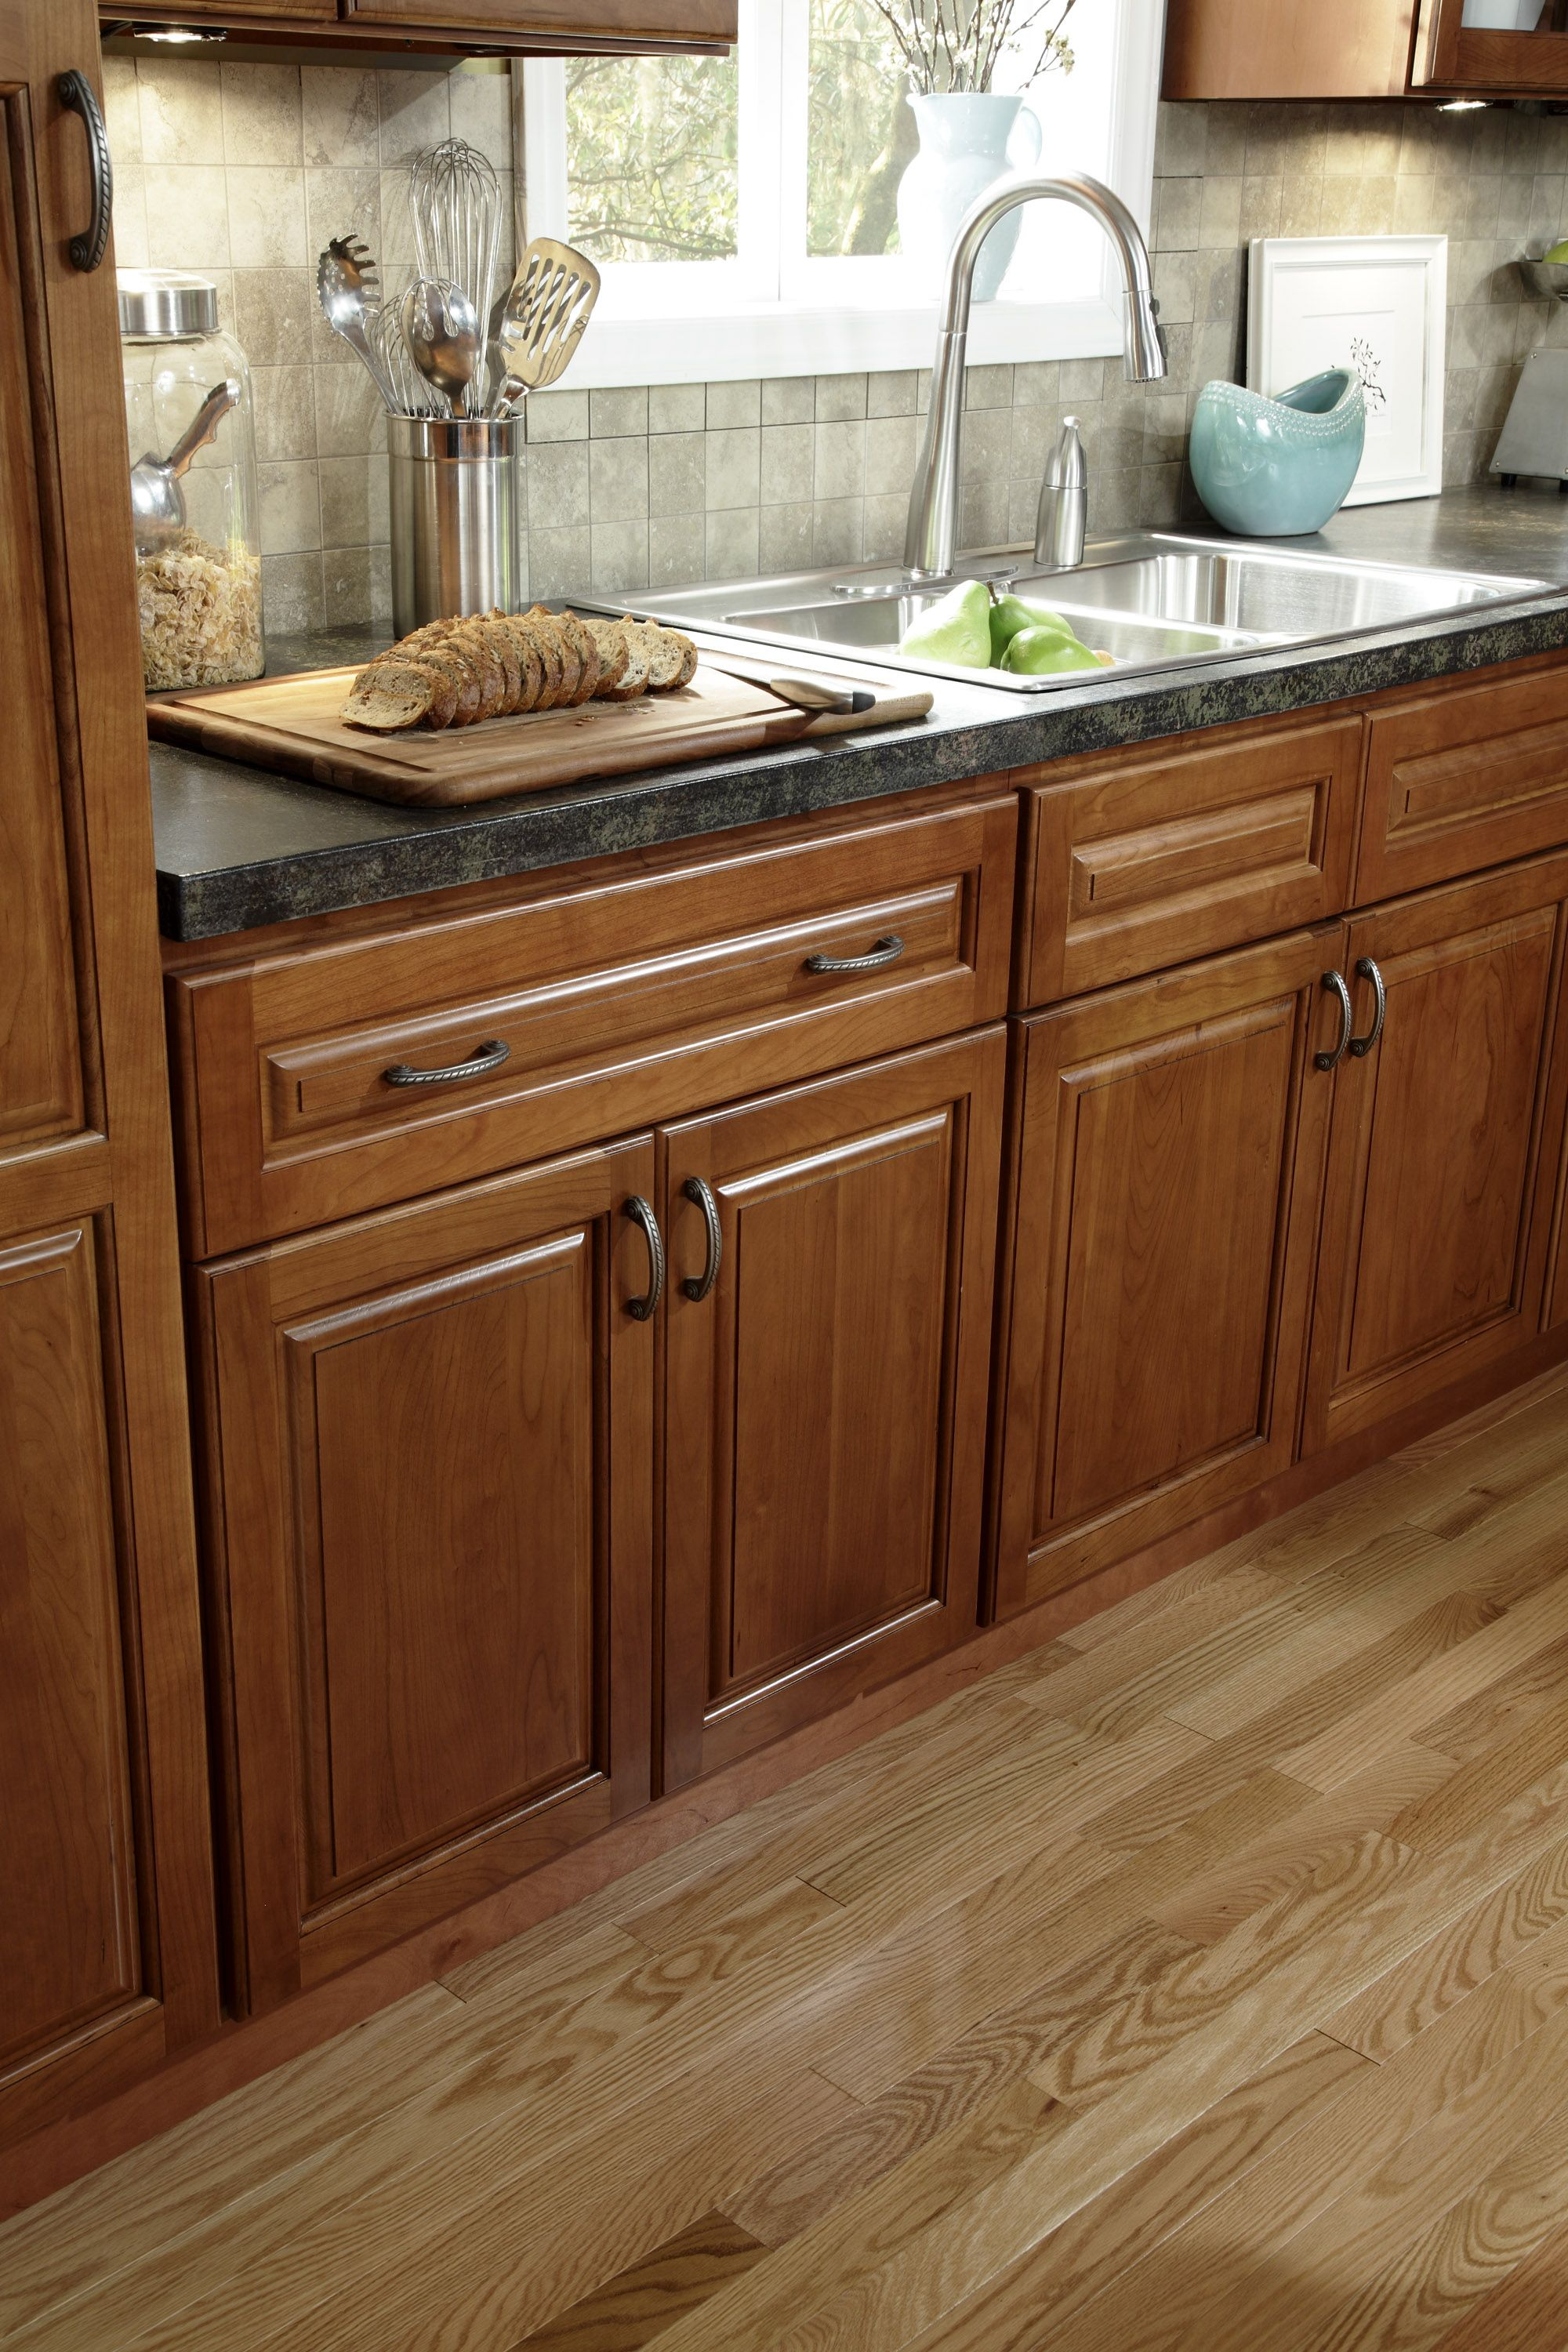 st moritz kitchen features solid american cherry wood frame. Interior Design Ideas. Home Design Ideas